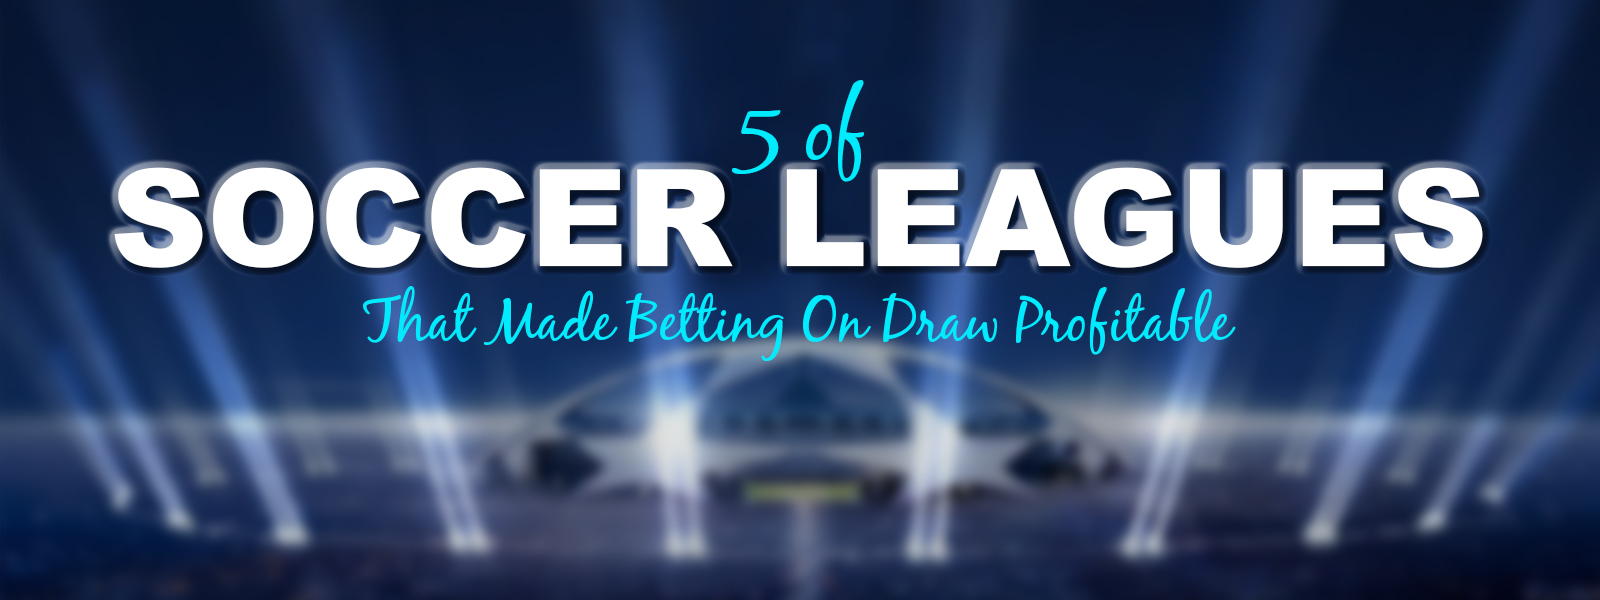 5 Soccer Leagues That Made Betting On Draw Profitable